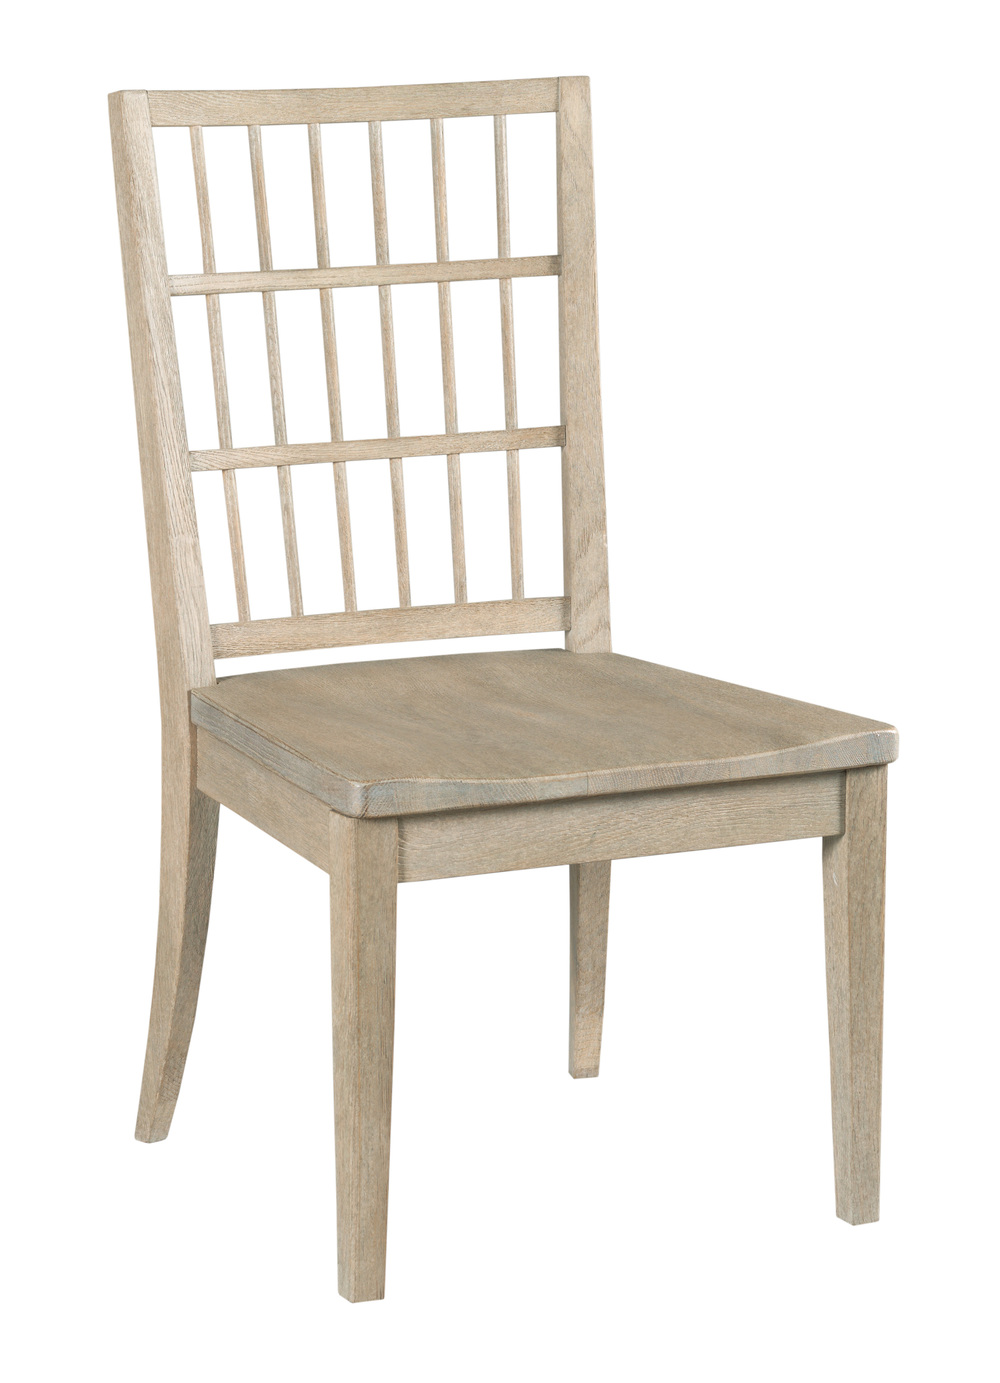 Kincaid Furniture - Symmetry Wood Side Chair